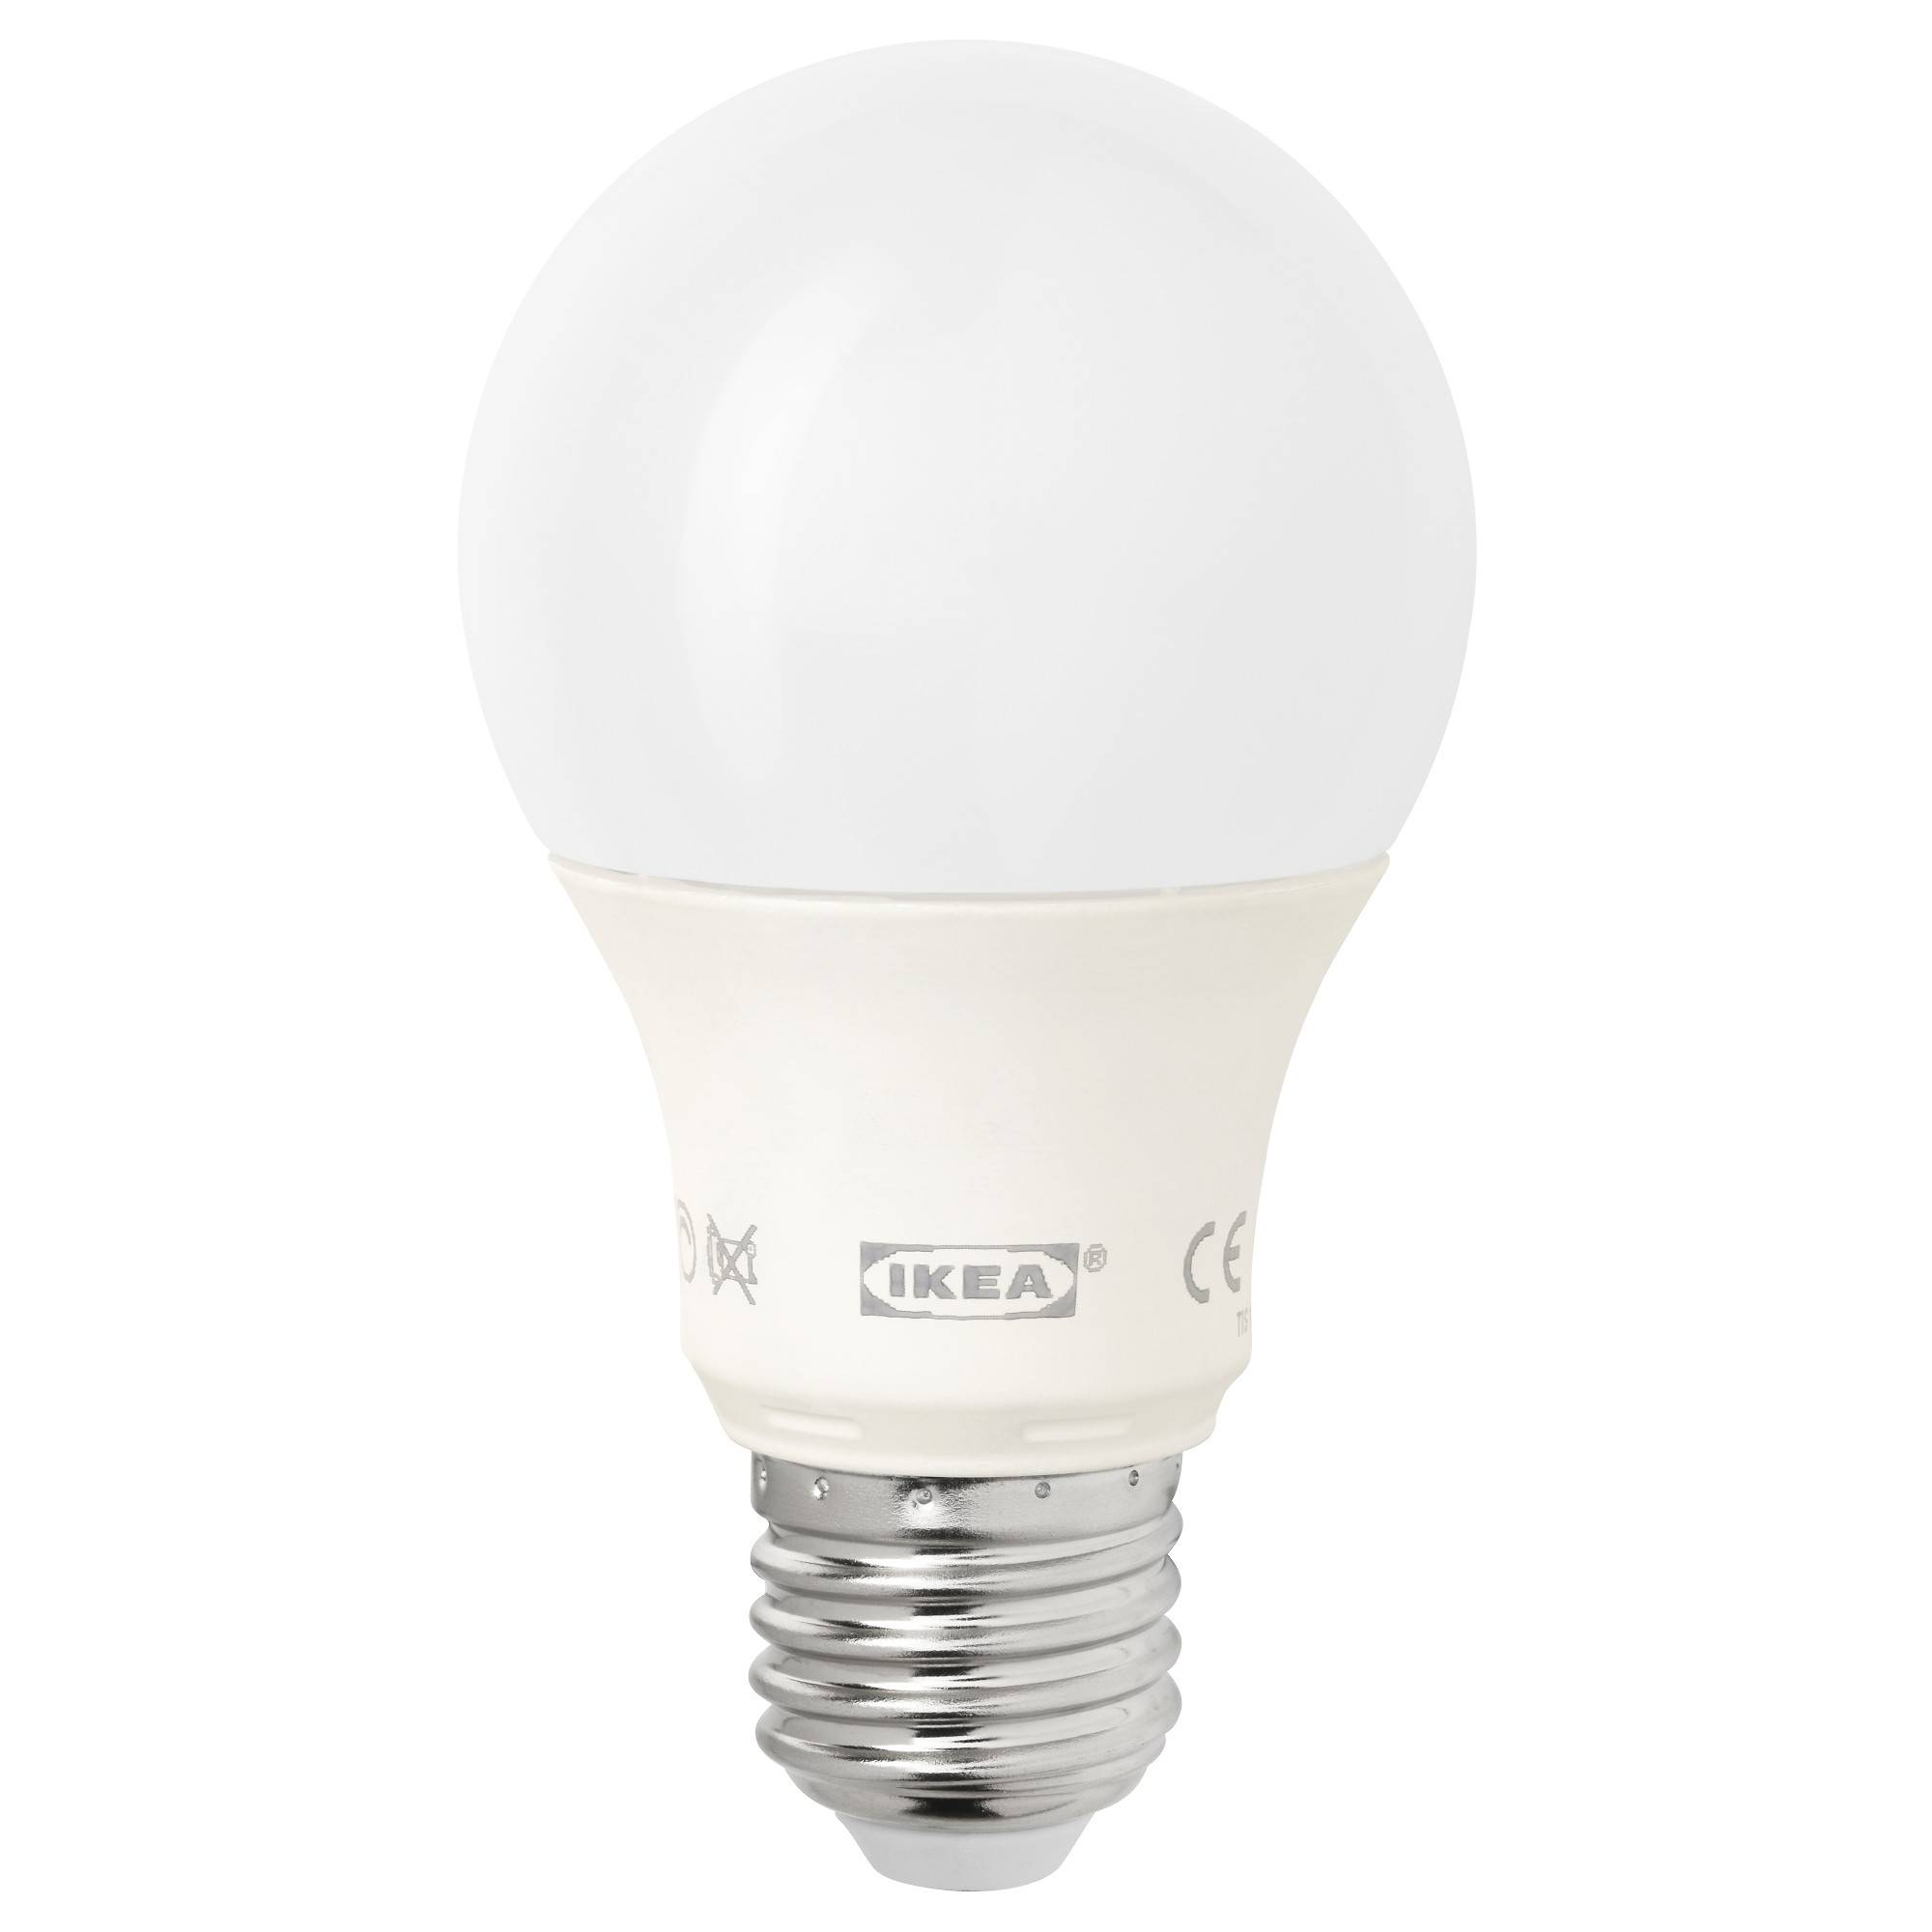 Ledare Led Bulb E26 600 Lumen – Ikea With Regard To Ikea Globe Lights (View 10 of 15)